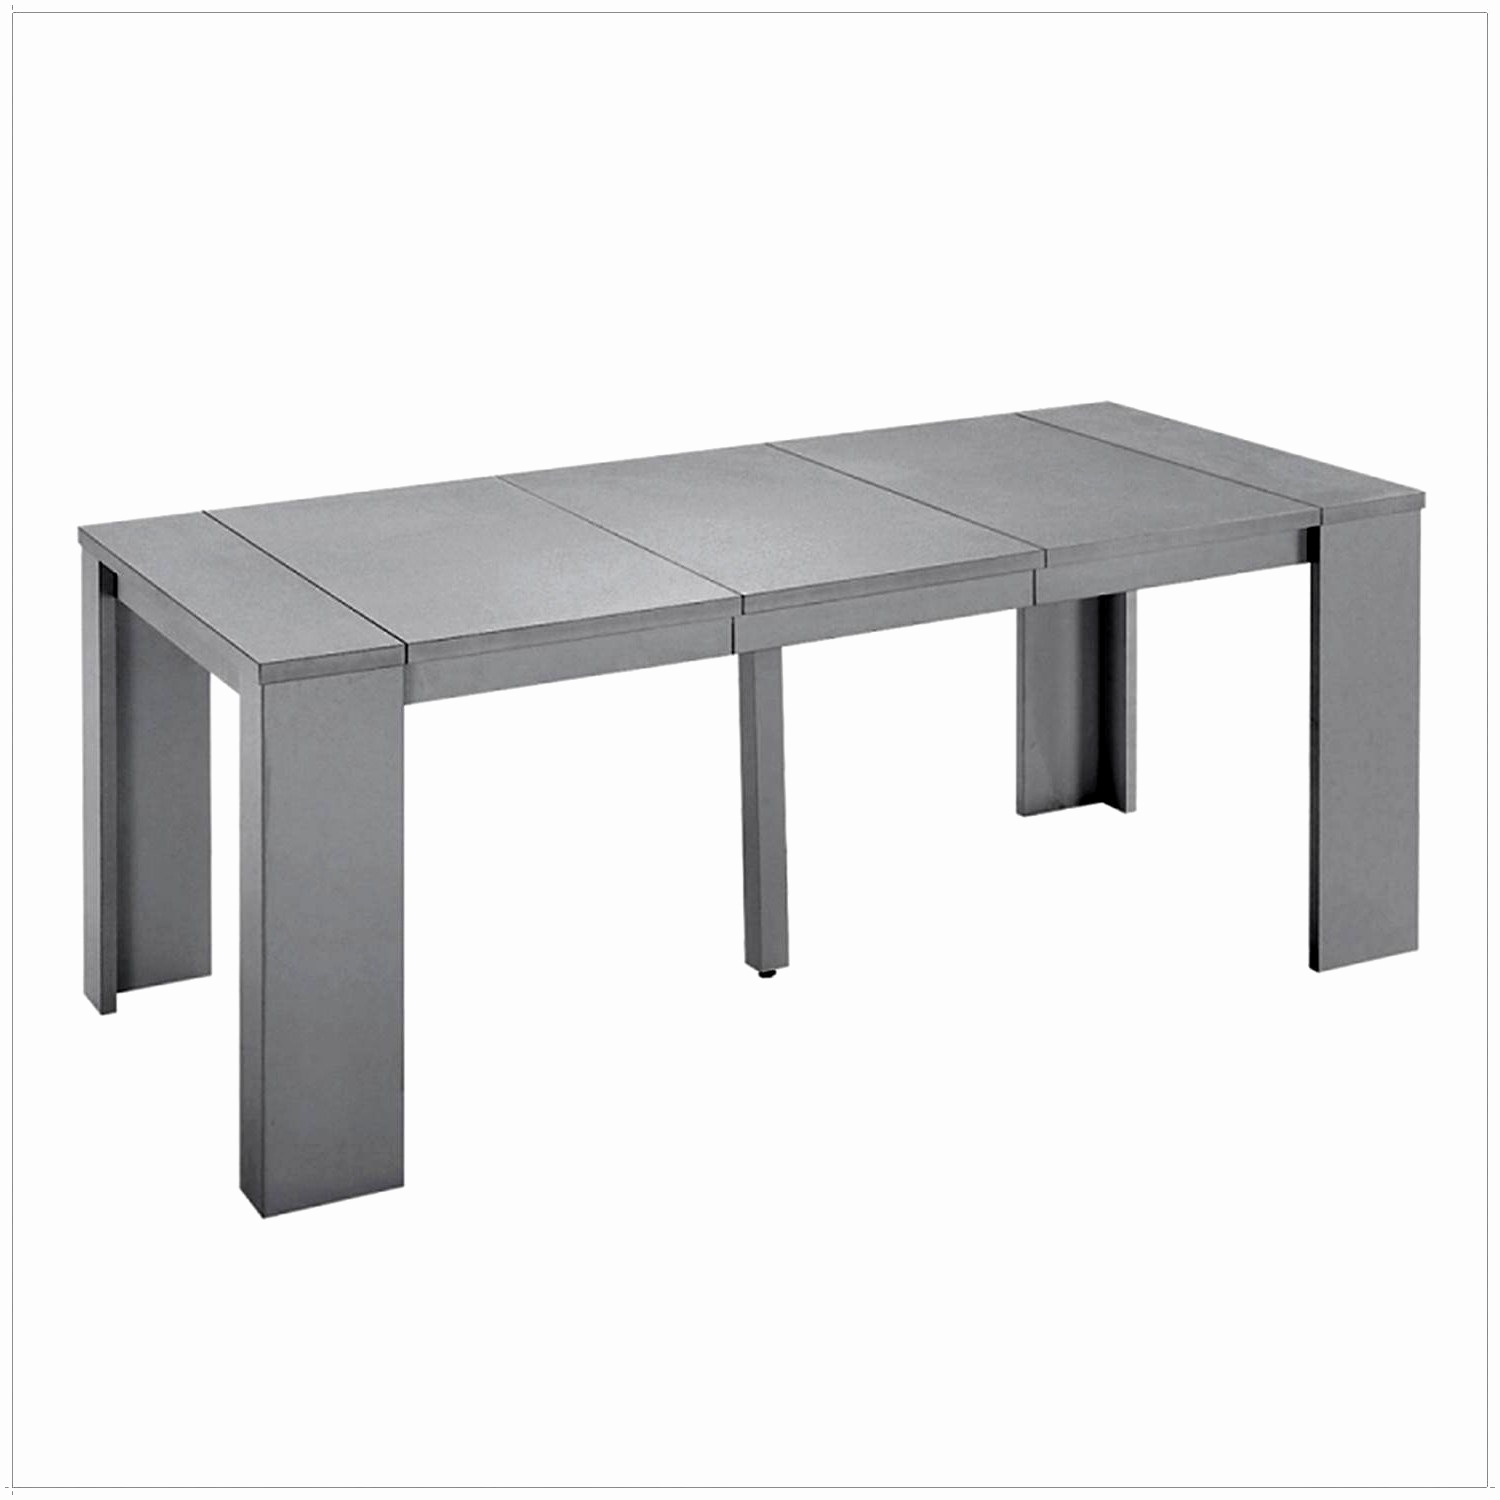 Table Salle A Manger Extensible Fly Frais Table Manger encequiconcerne Table Salle A Manger Extensible Fly